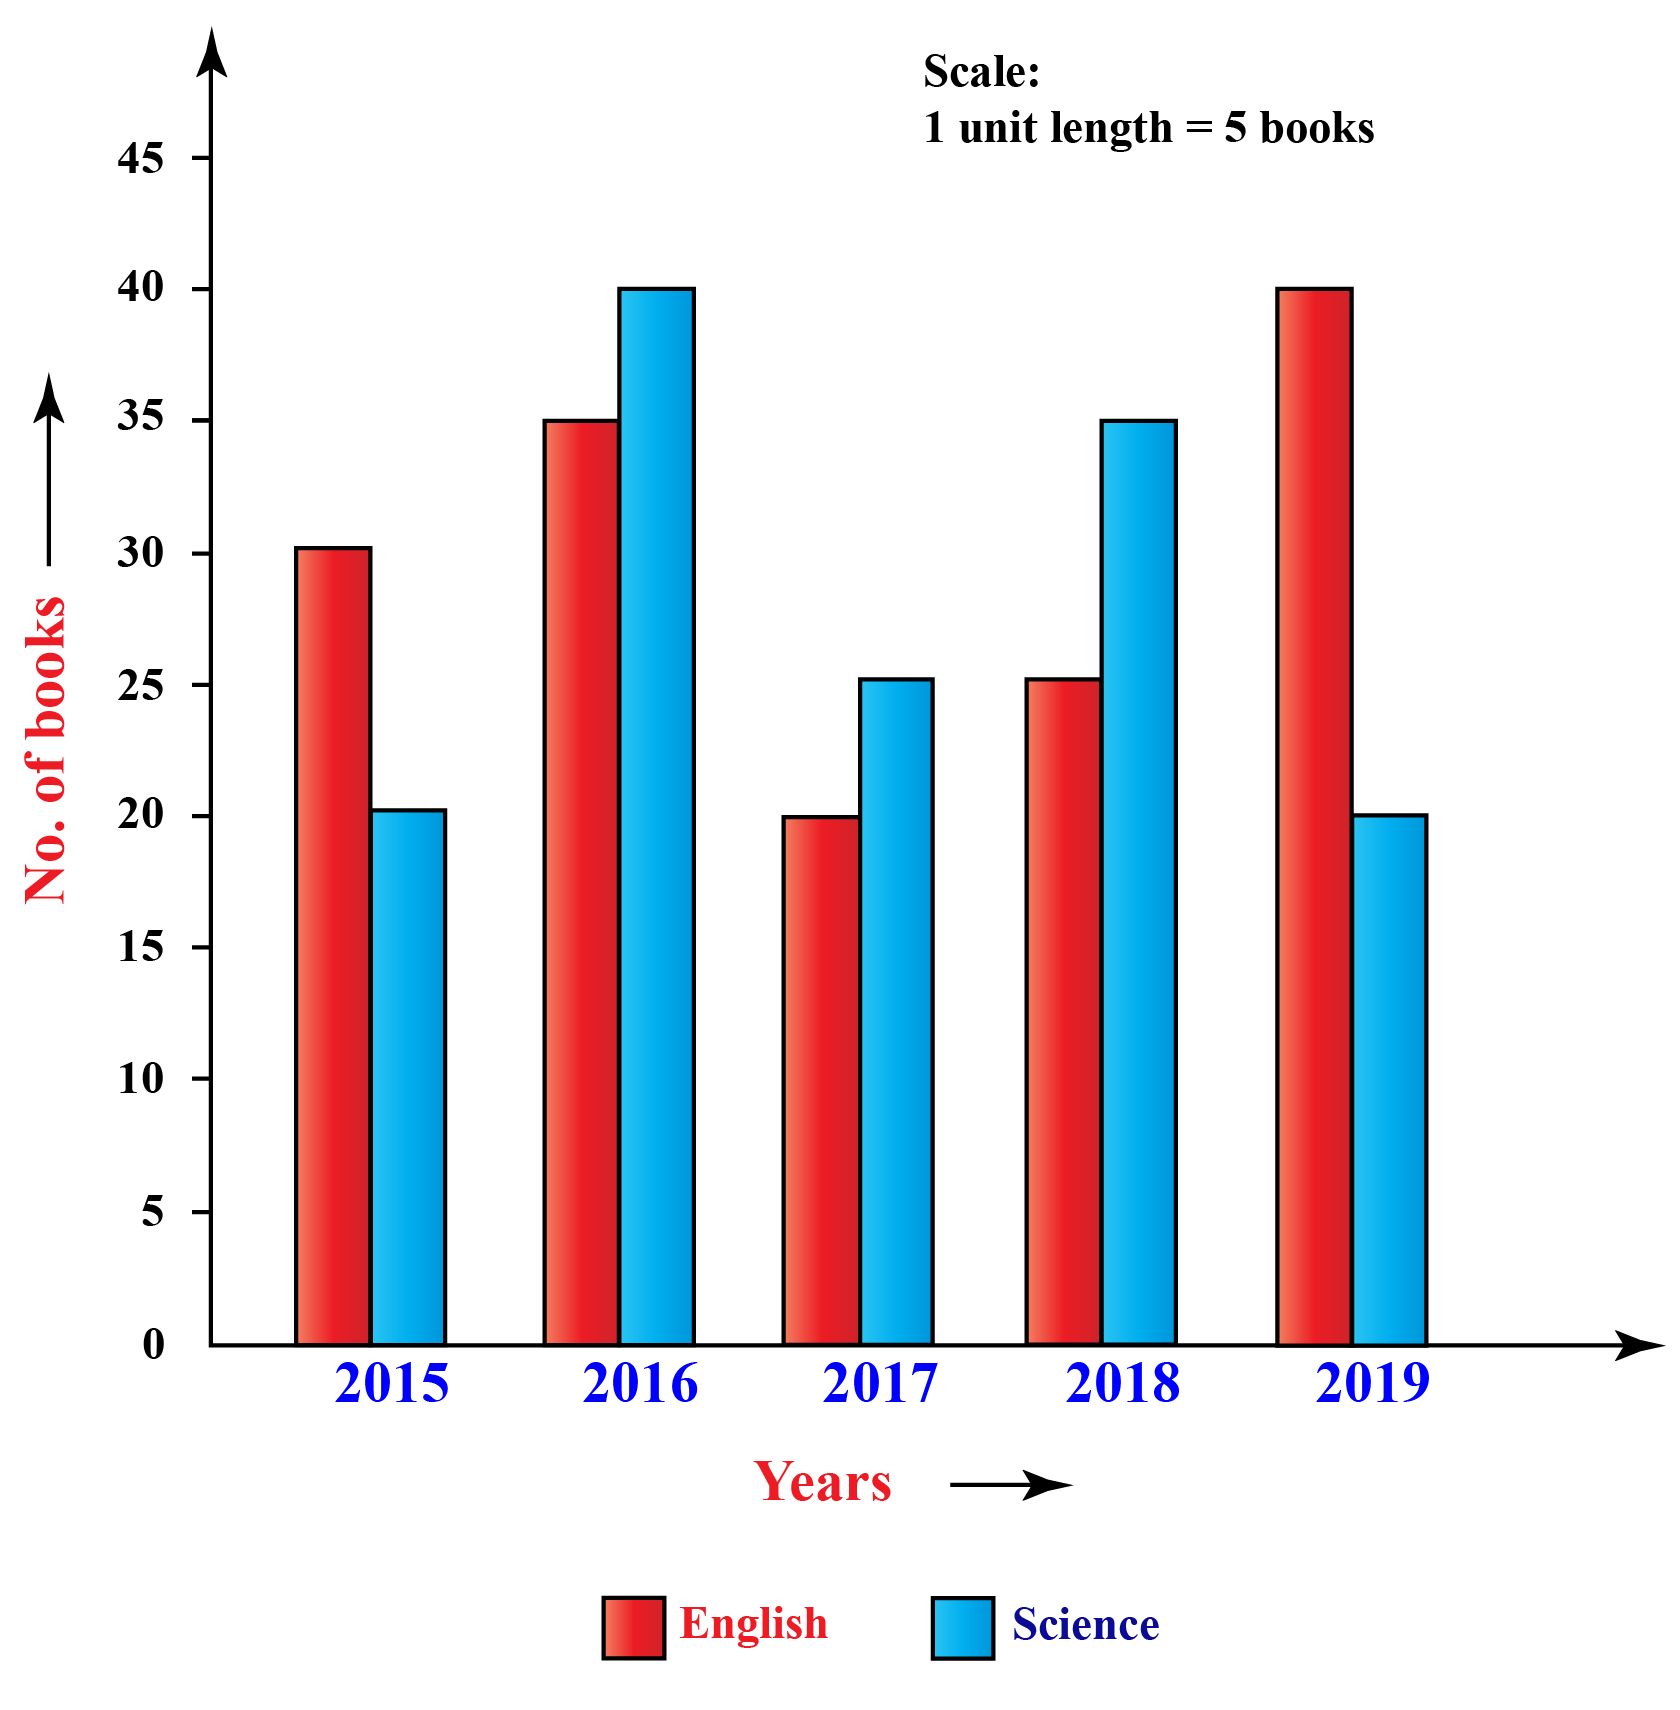 Example of double bar graph